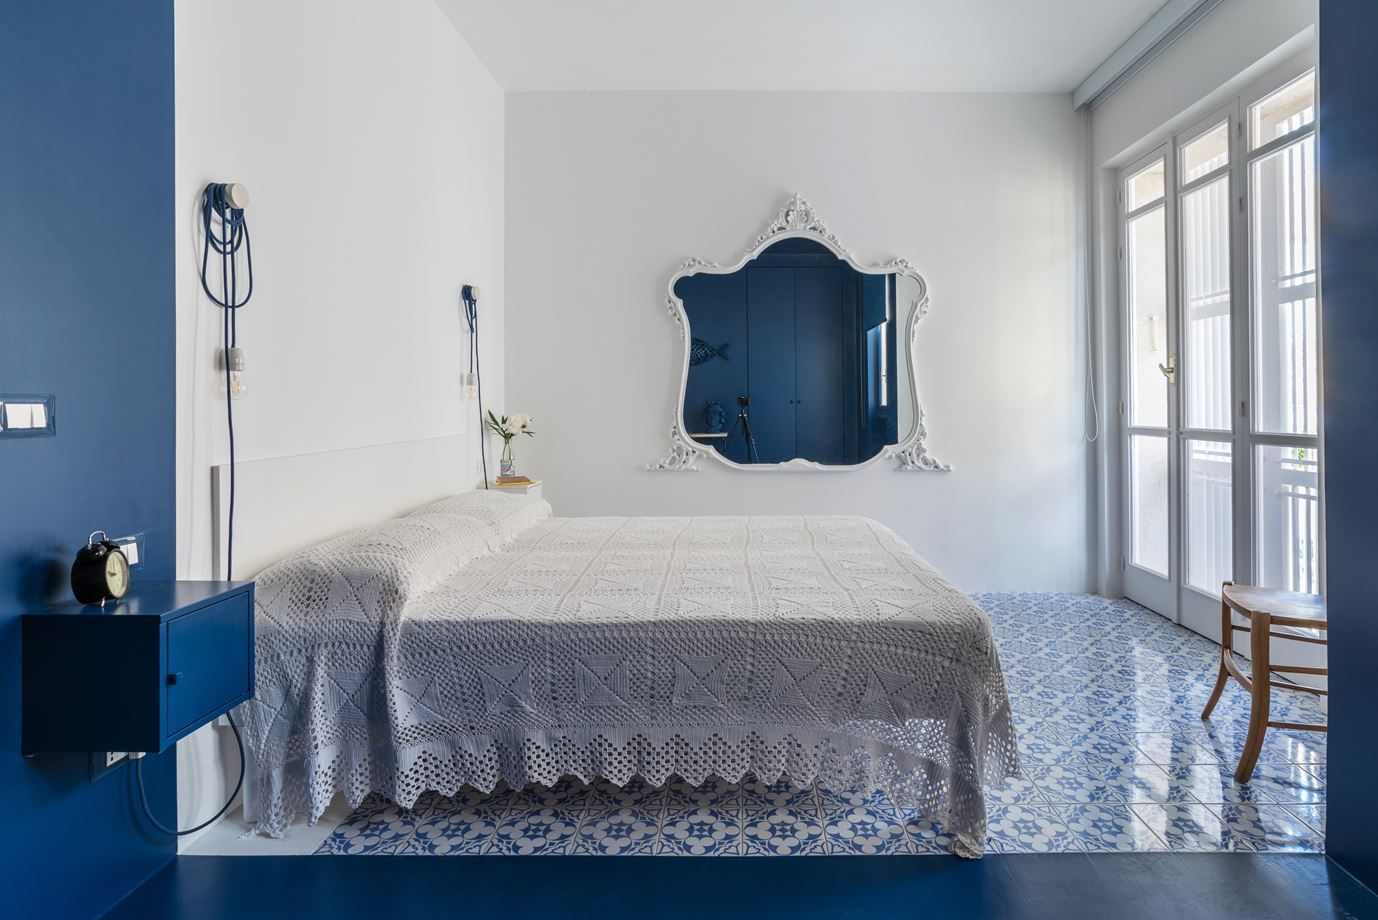 1560234223 68 try a minimalist bedroom design for less stress and a good nights sleep - Try a Minimalist Bedroom Design for Less Stress and a Good Night's Sleep